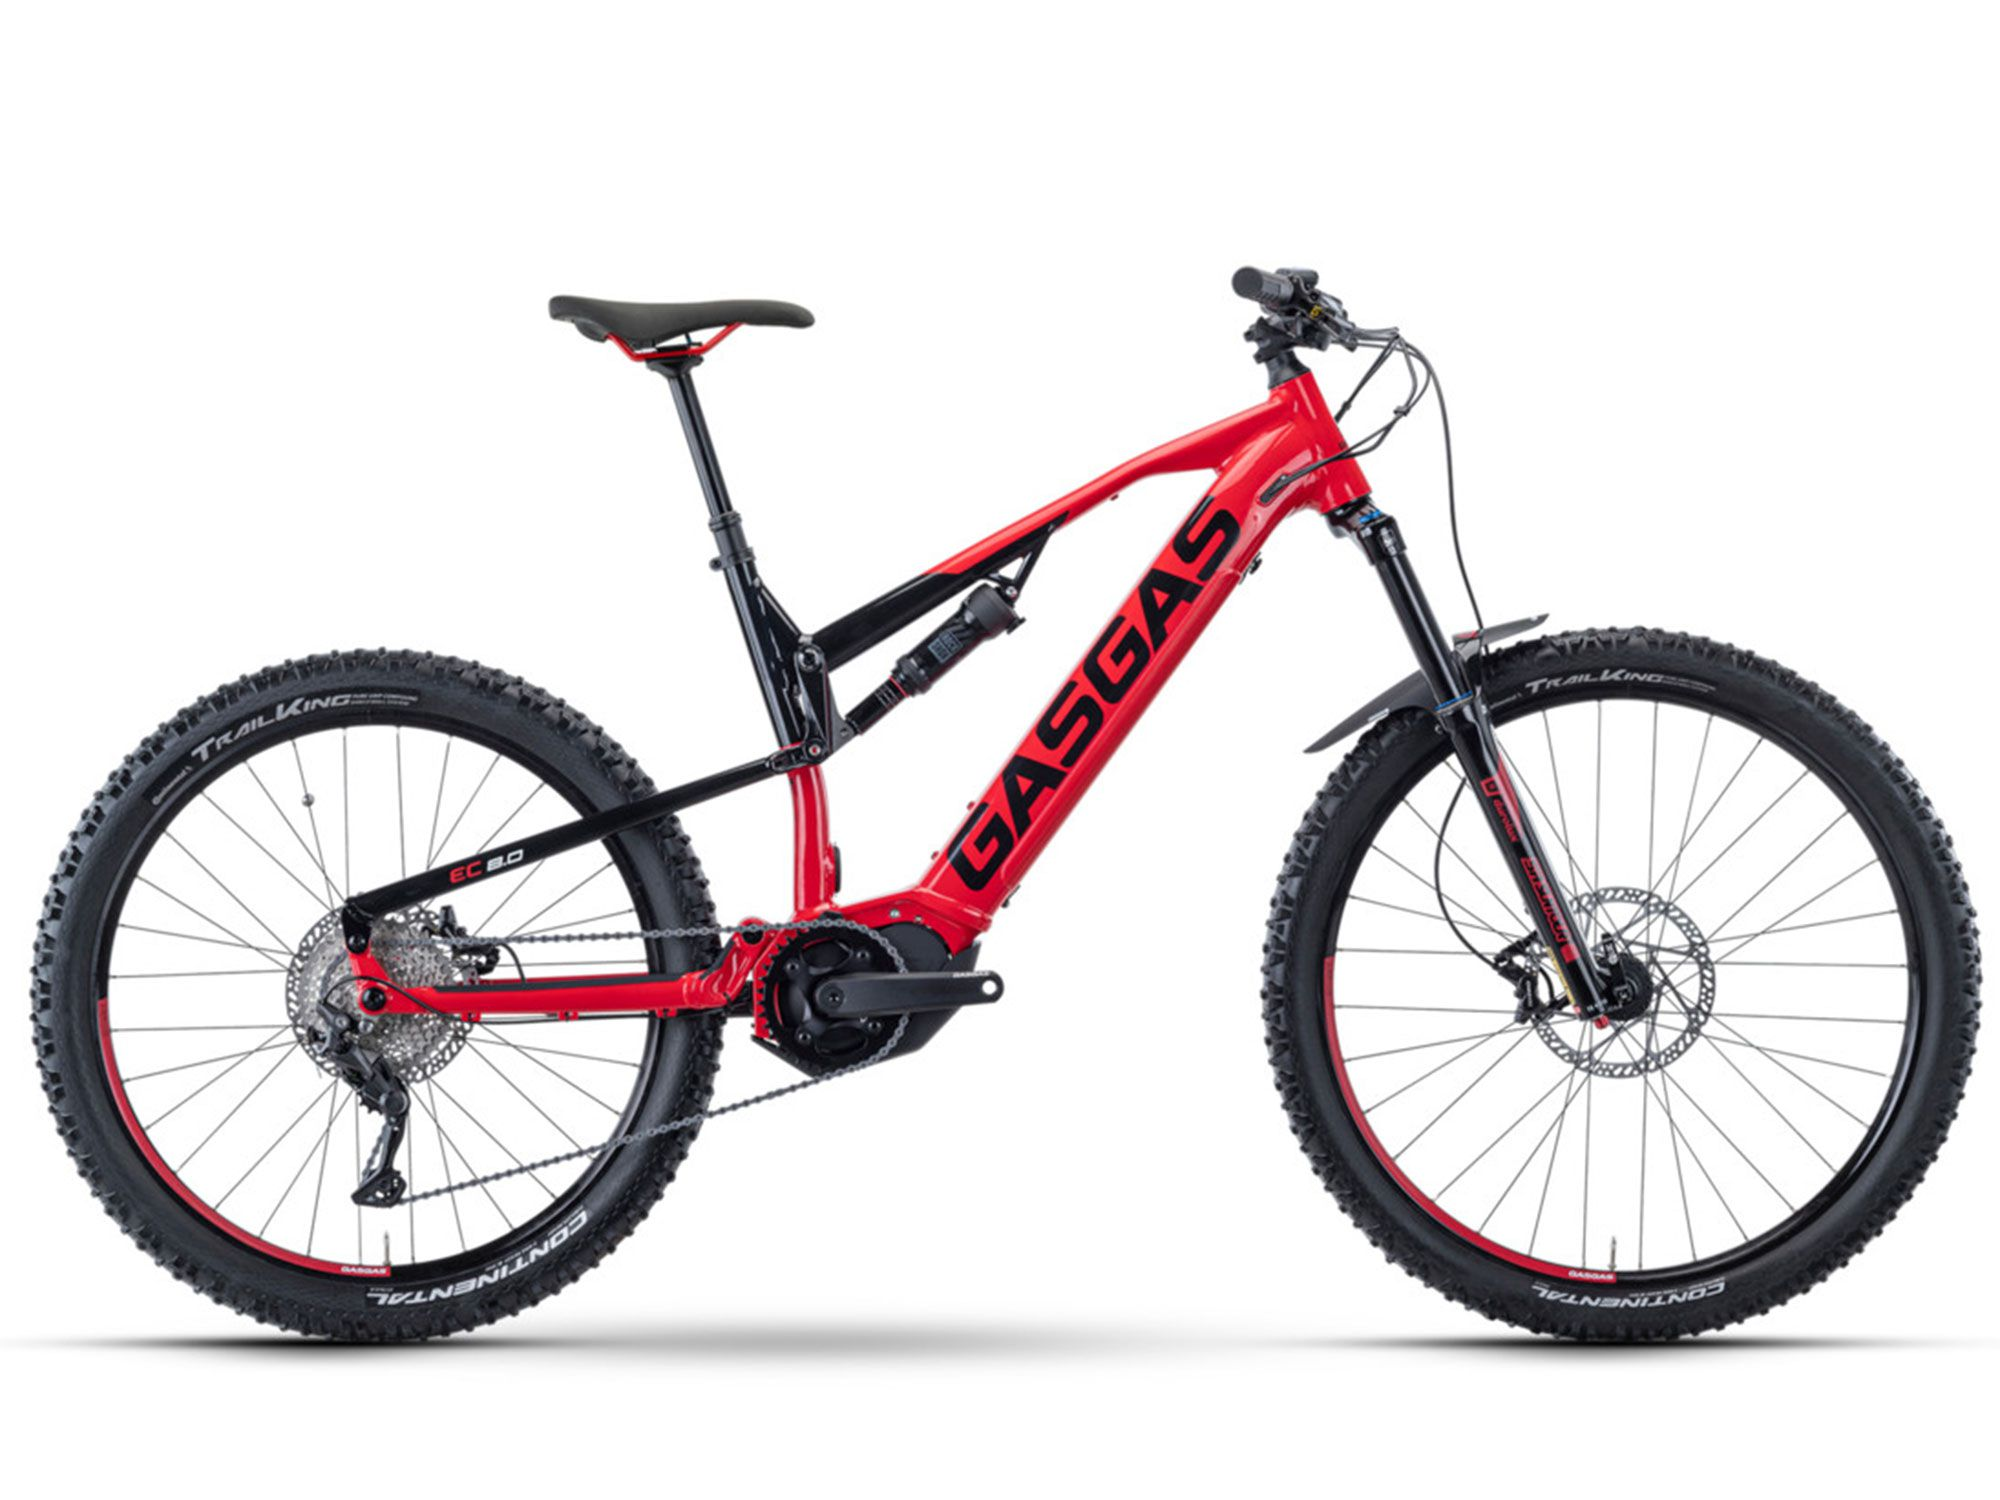 The Enduro Cross 8.0 is the most affordable entry in the 2021 GasGas Enduro Cross family.